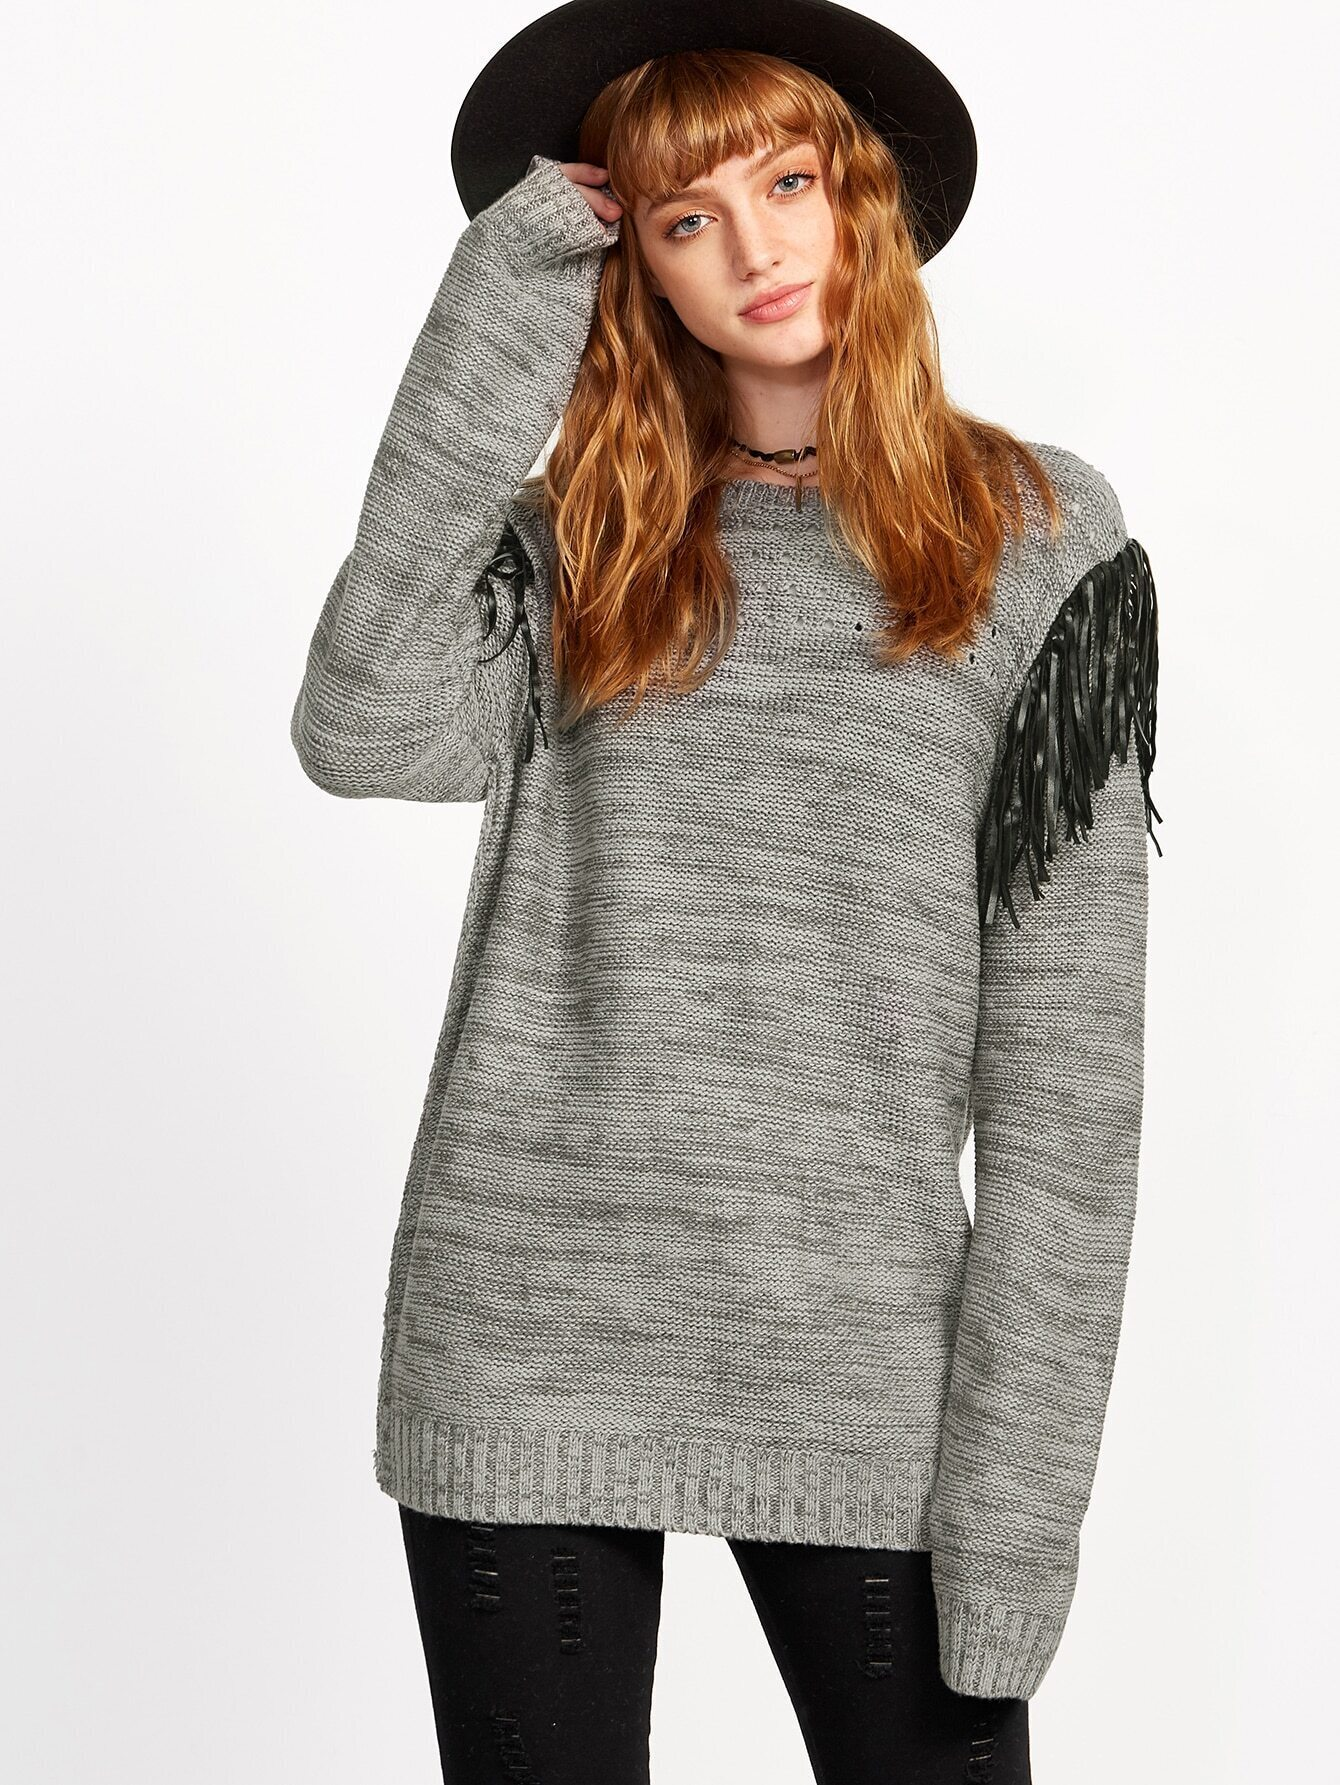 Grey Marled Knit Fringe Trim Eyelet Sweater